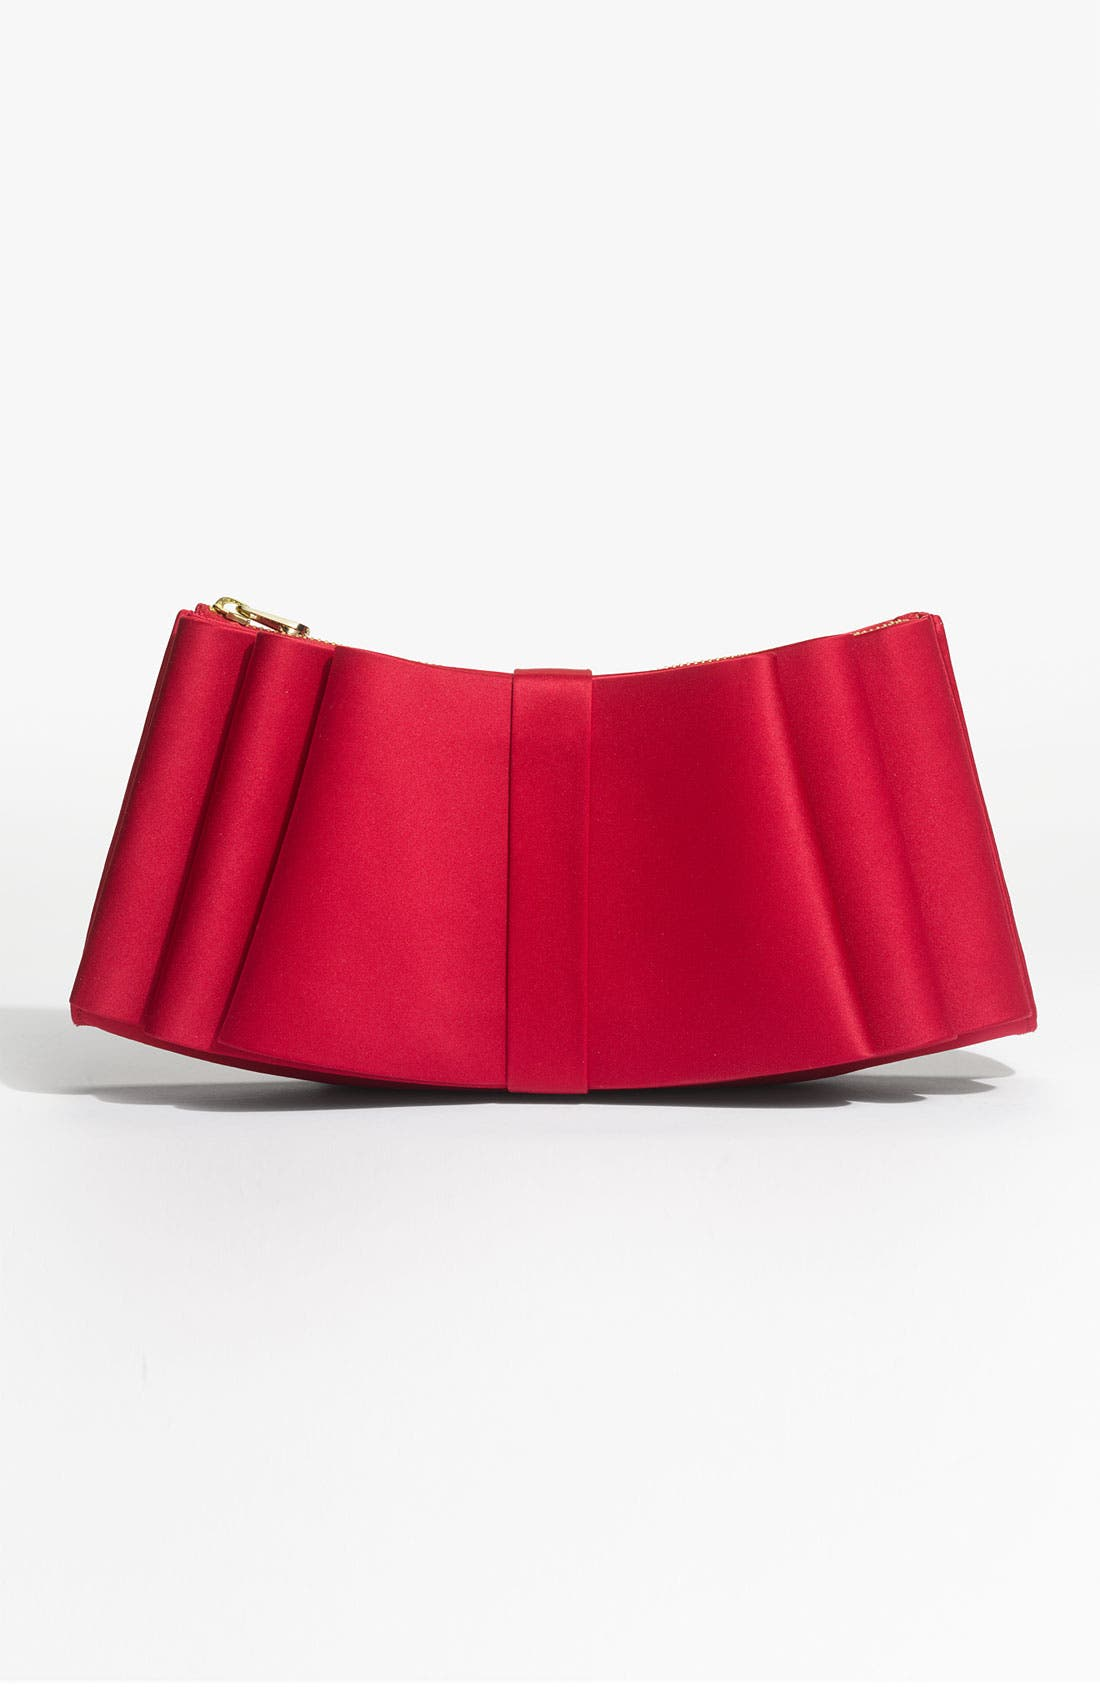 Alternate Image 2  - Ted Baker London 'Origami Folds' Clutch